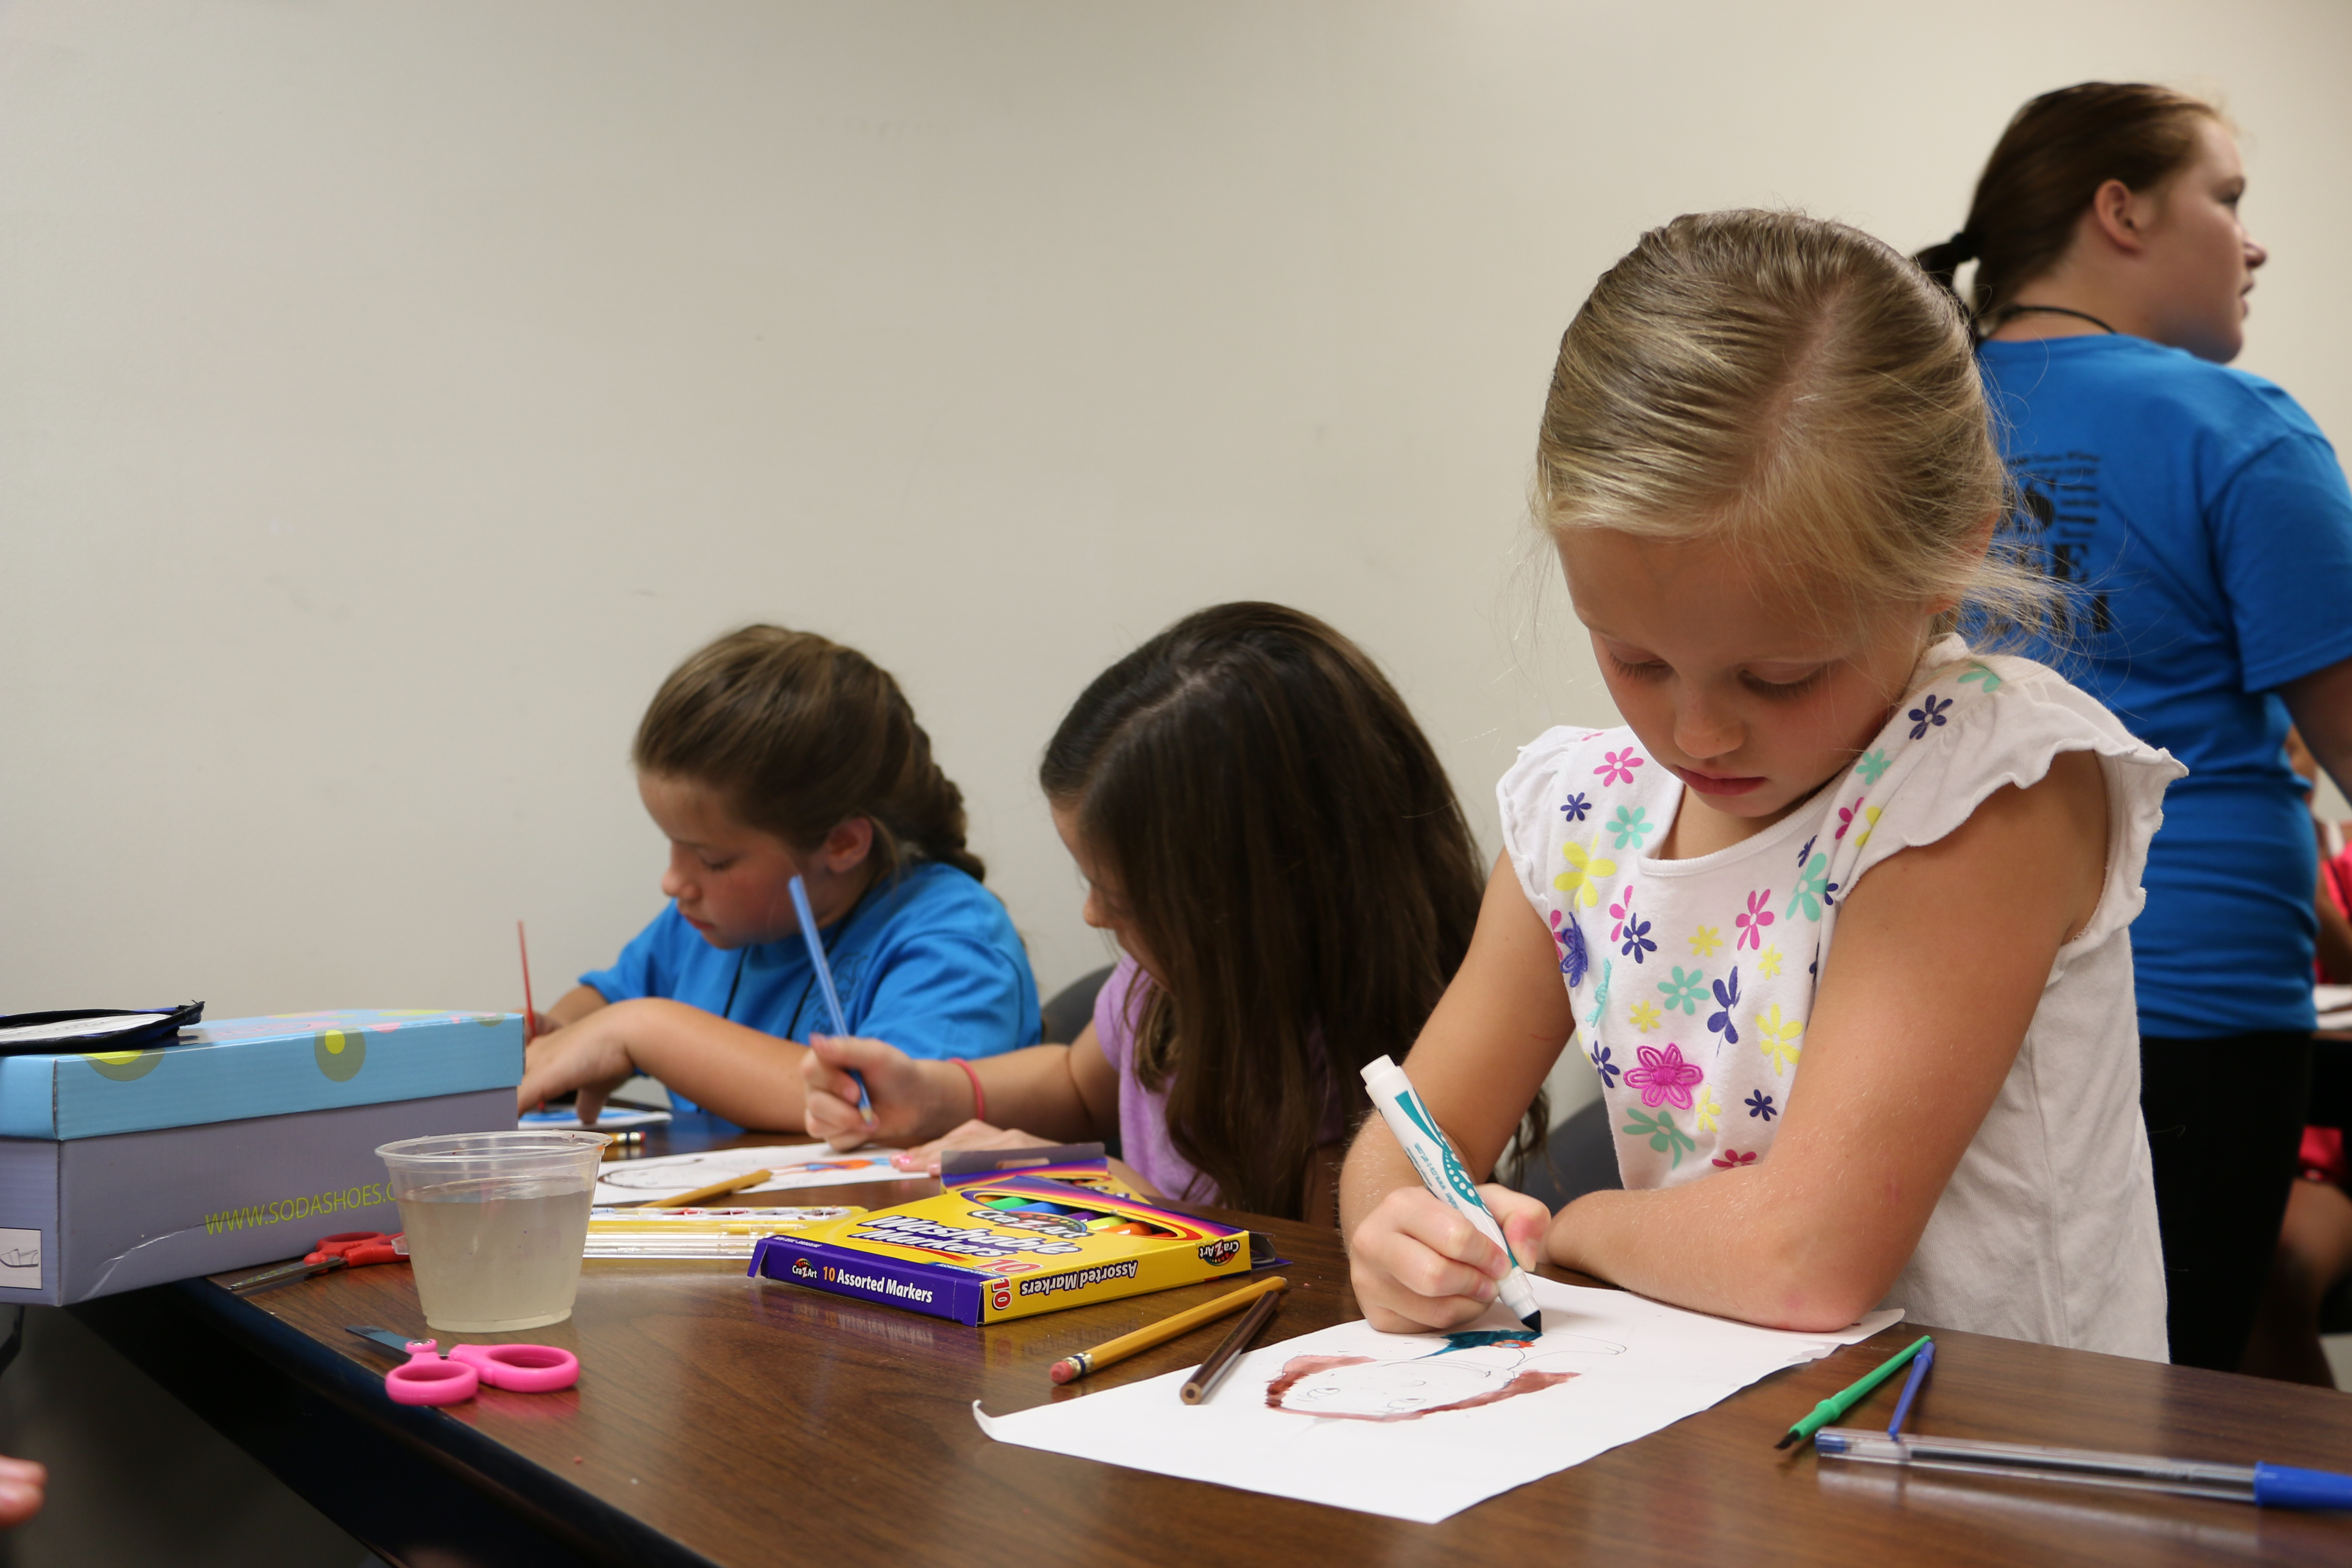 Three young girls sitting at a table and painting with brushes, pencils, and markers.